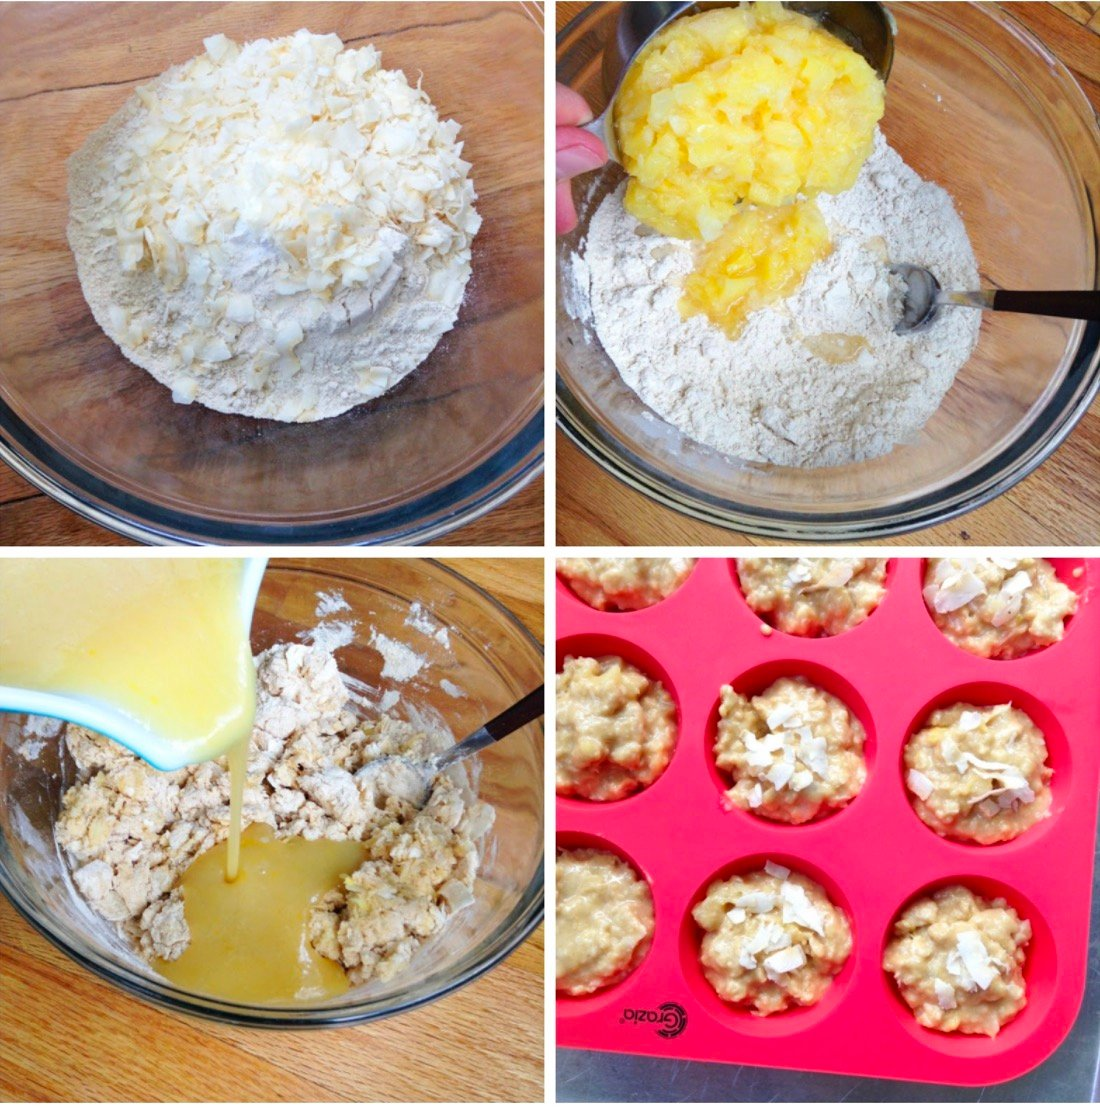 Pineapple Coconut Muffins from Super Healthy Kids on 100 Days of Real Food